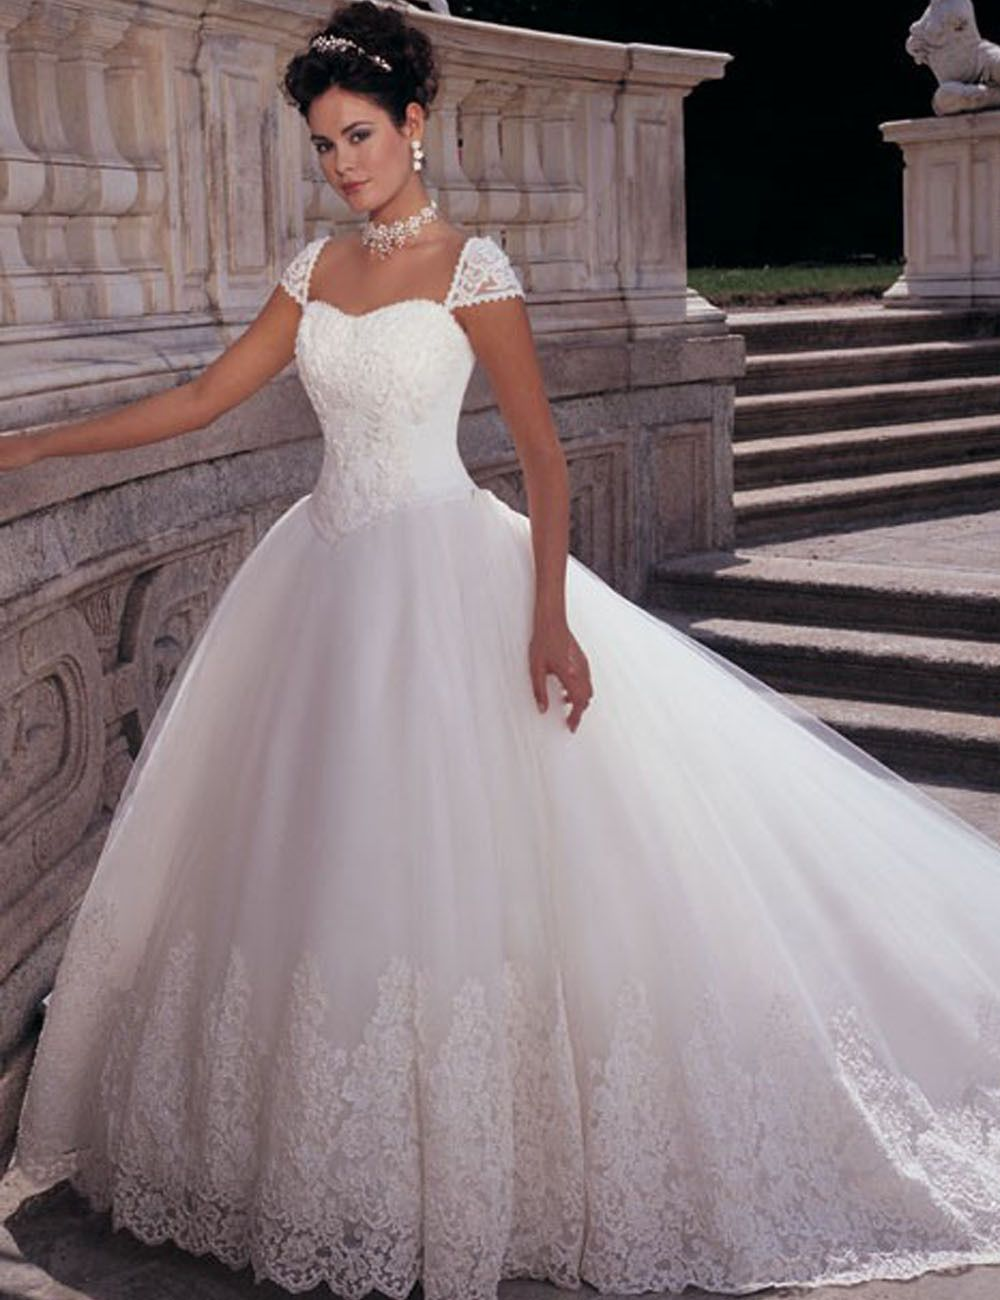 Fairytale wedding dresses google search disney wedding for Pinterest dresses for wedding